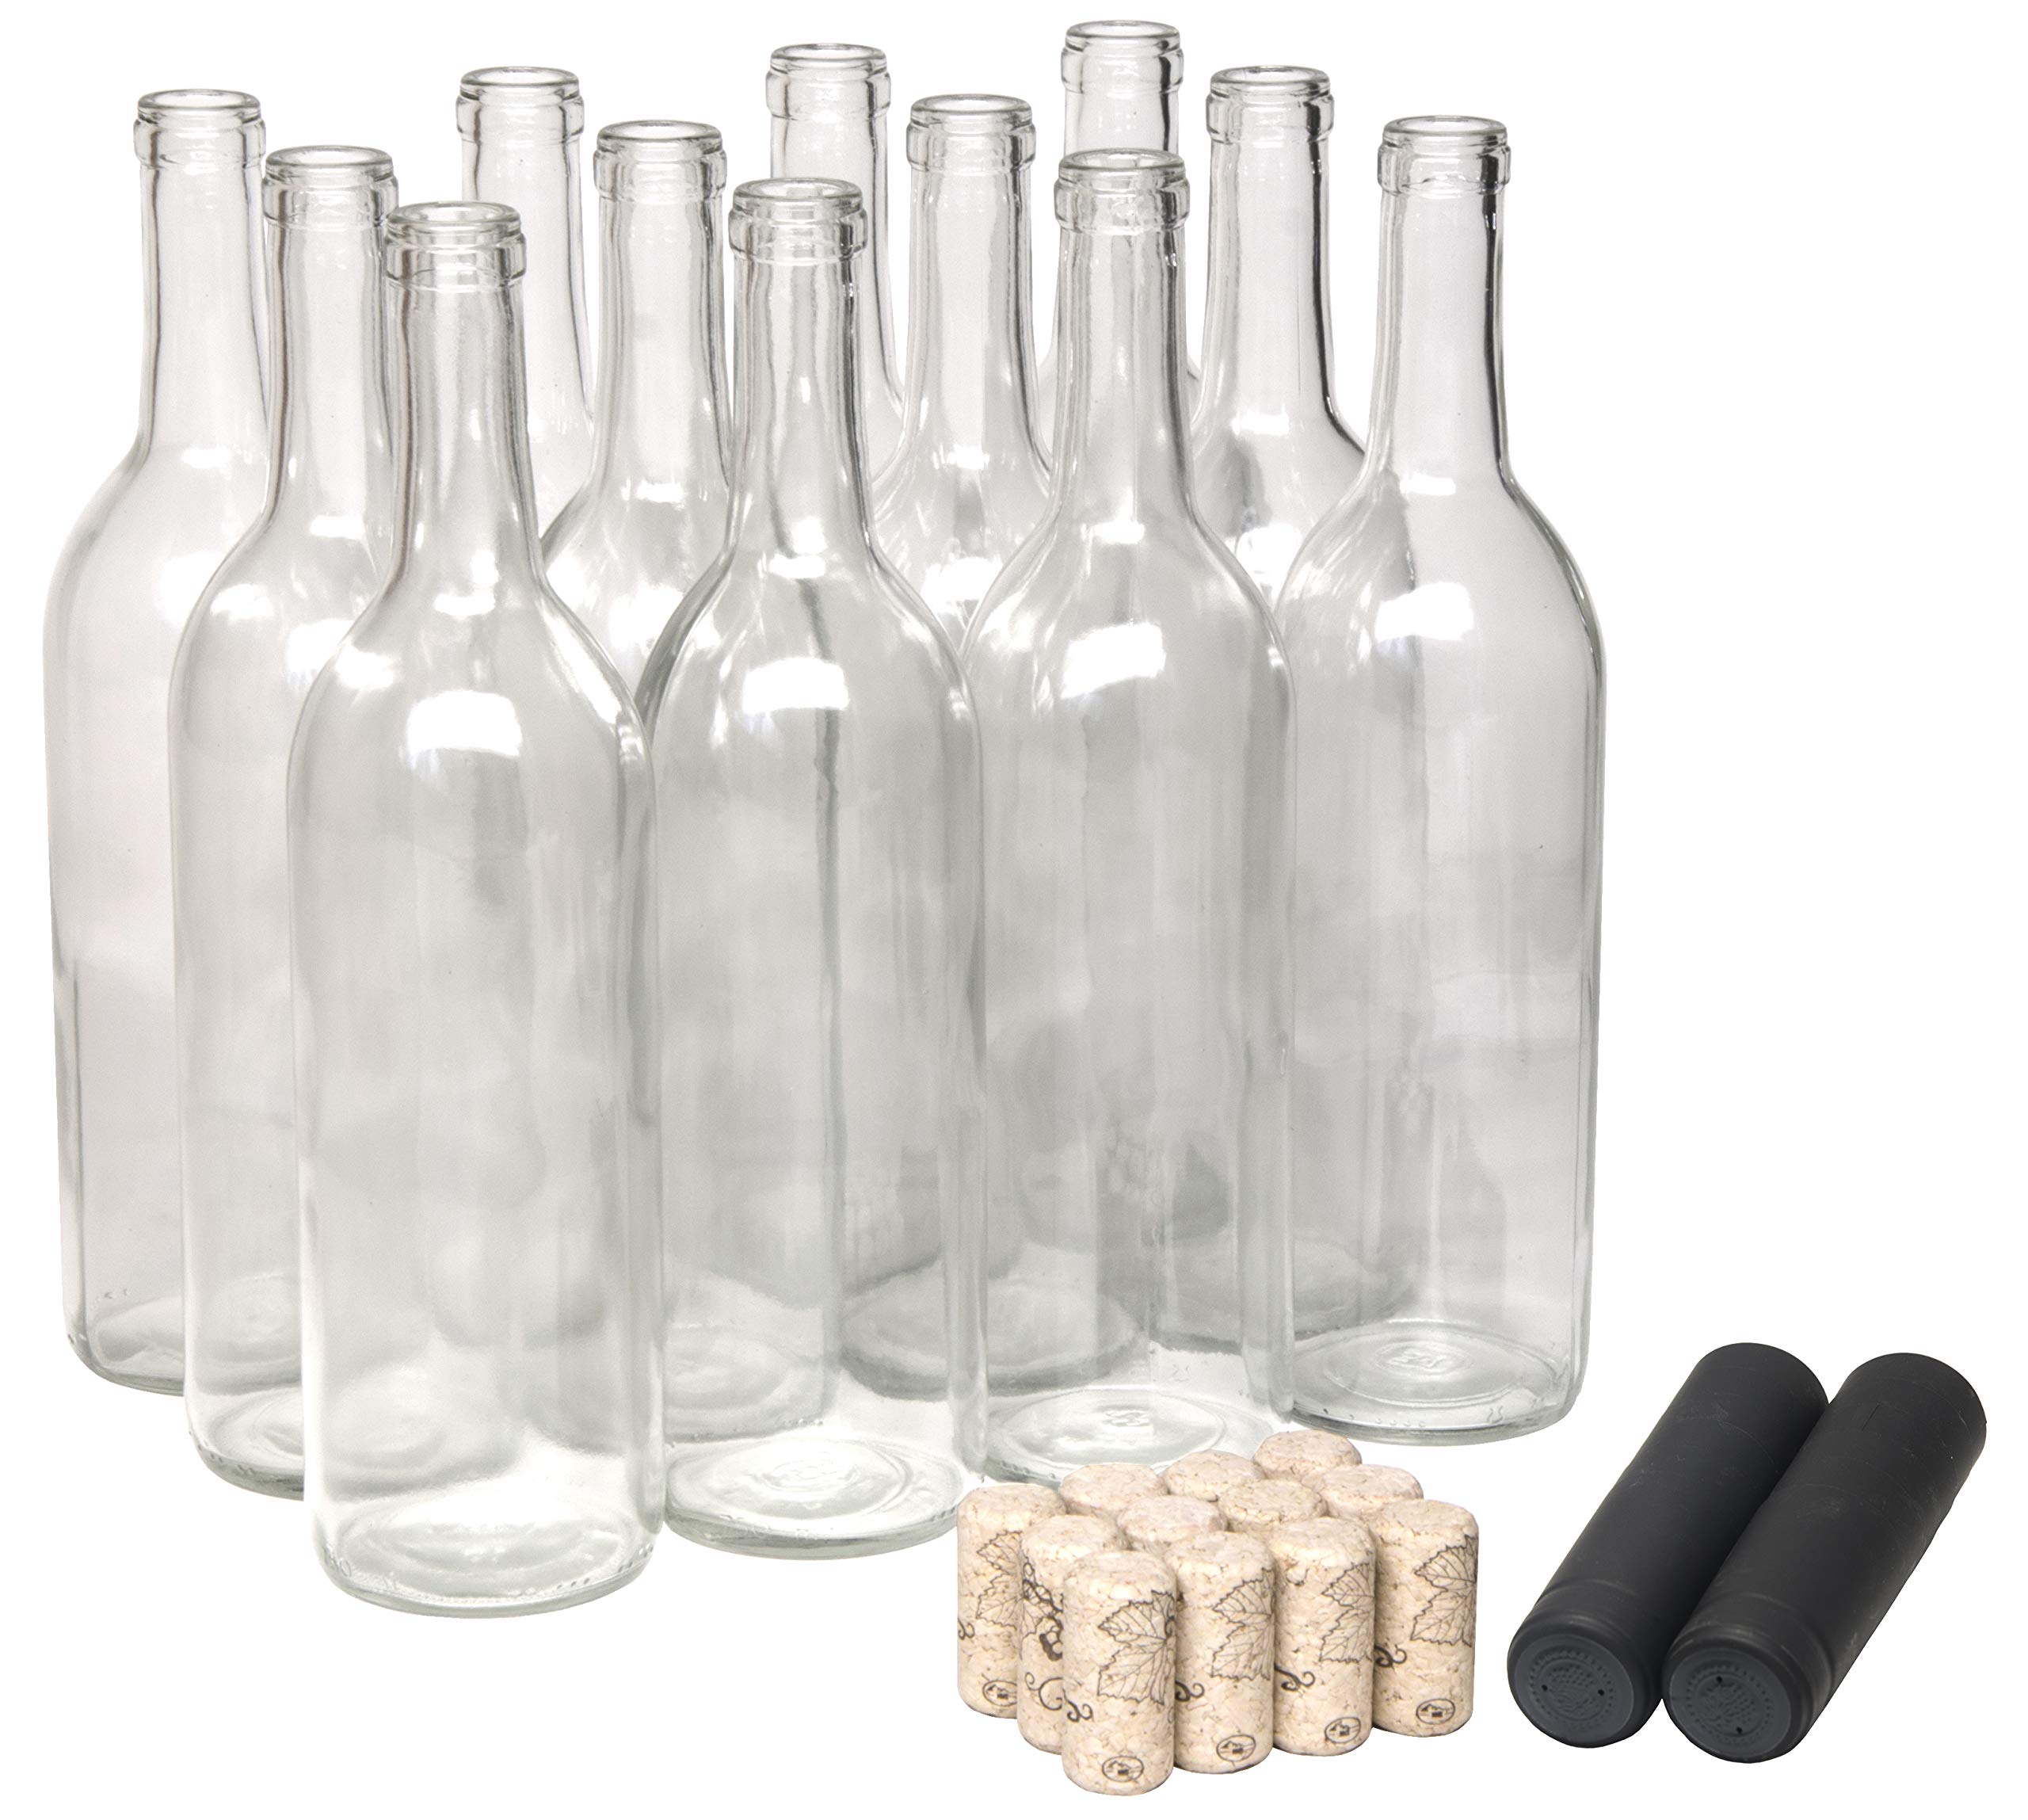 North Mountain Supply 750ml Glass Bordeaux Wine Bottle Flat-Bottomed Cork Finish - with #8 Premium Natural Corks & PVC Shrink Capsules - Case of 12